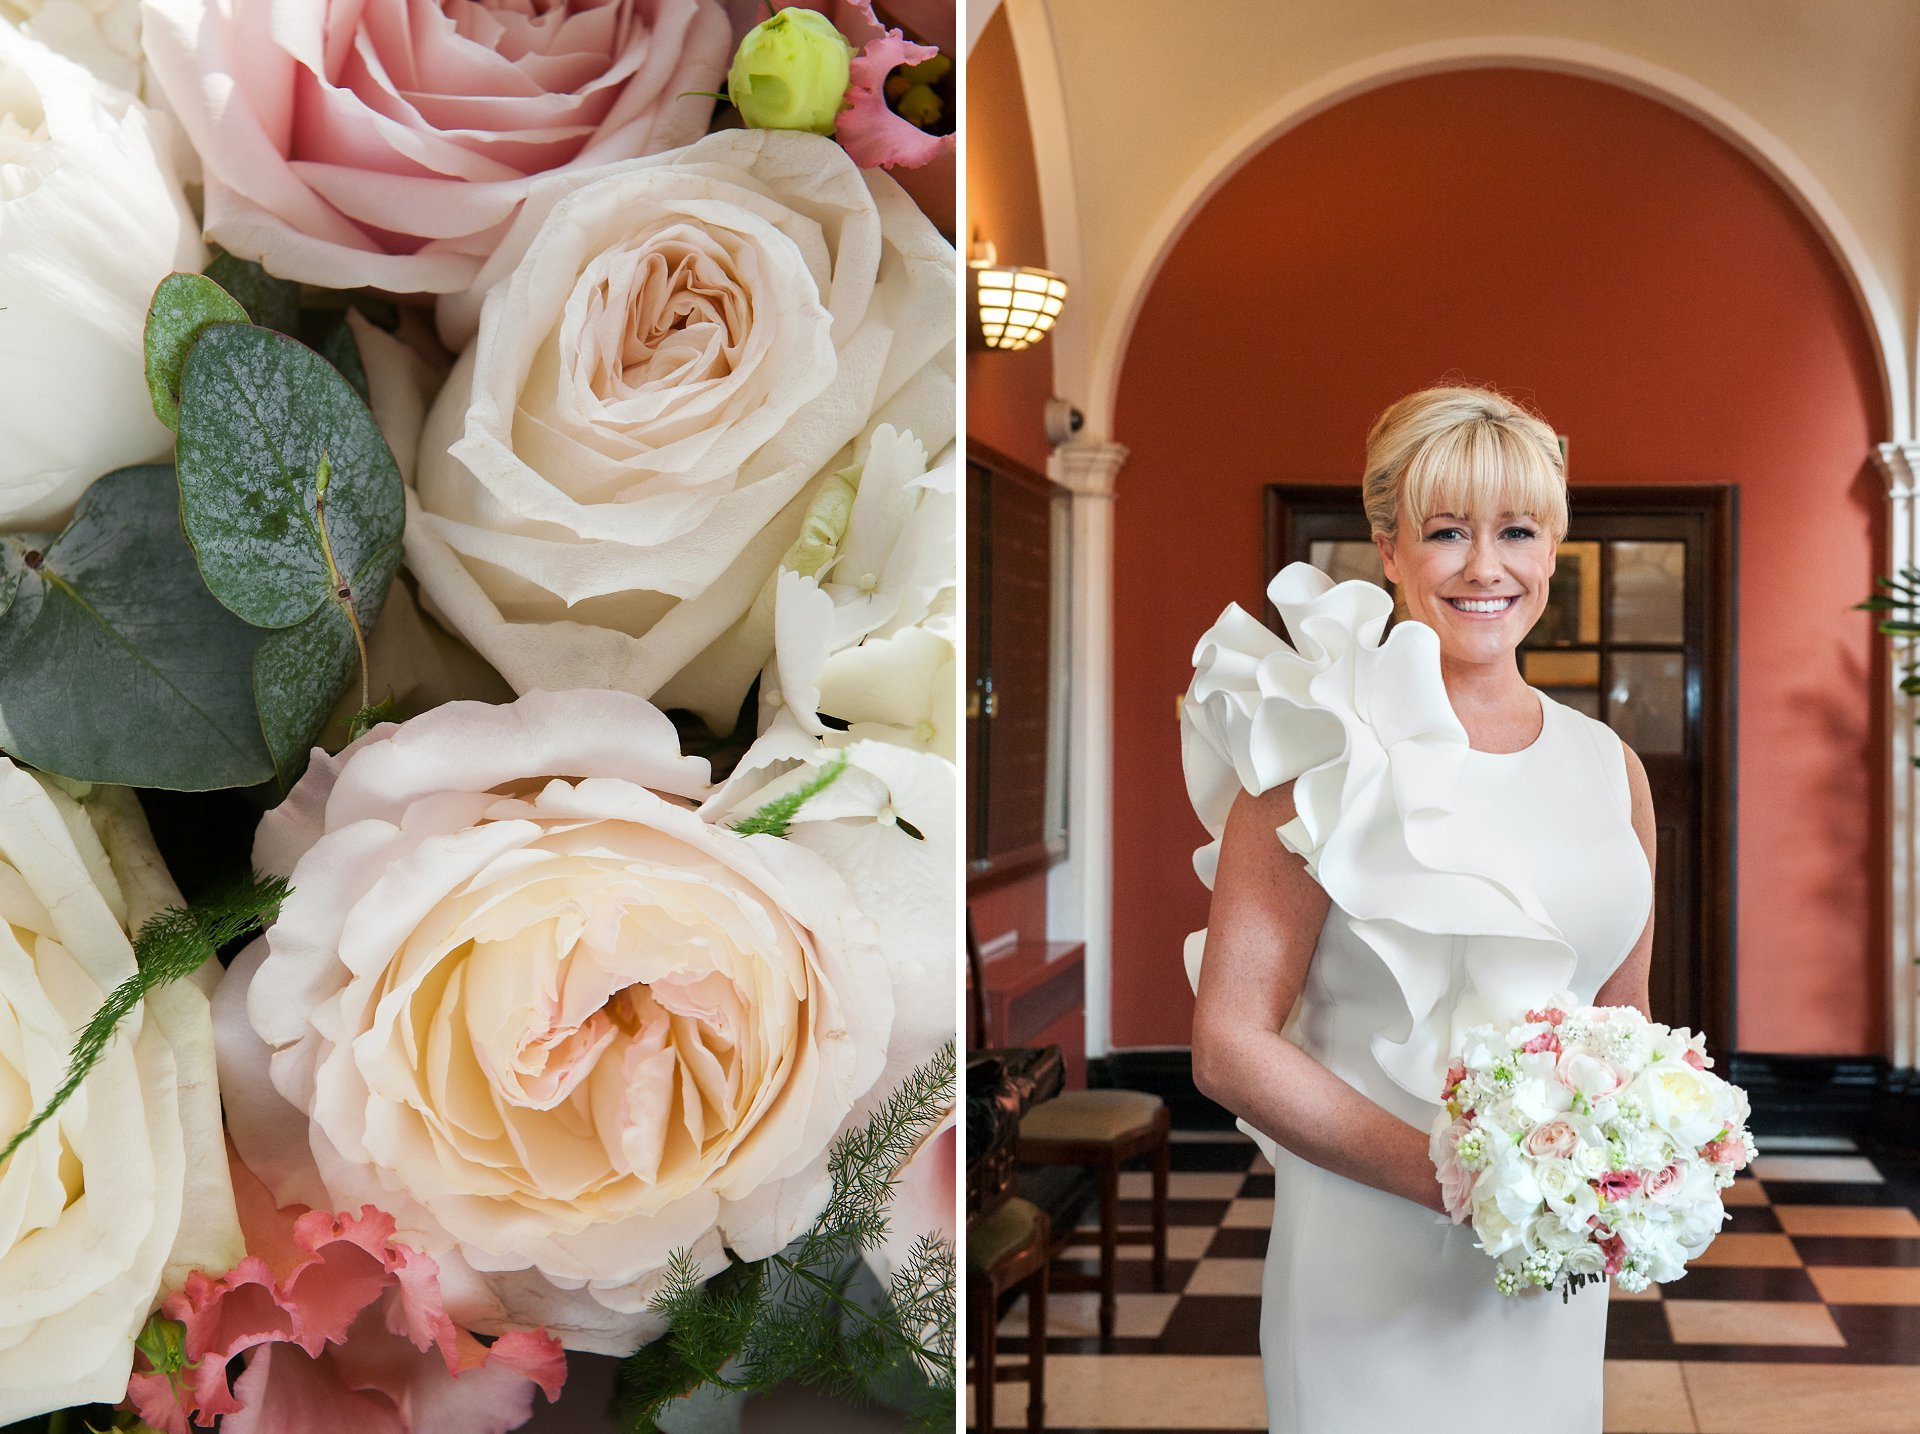 Bride Erin in the Waiting Room of Chelsea Old Town Hall holding her spring rose bouquet by London florist Amie Bone.